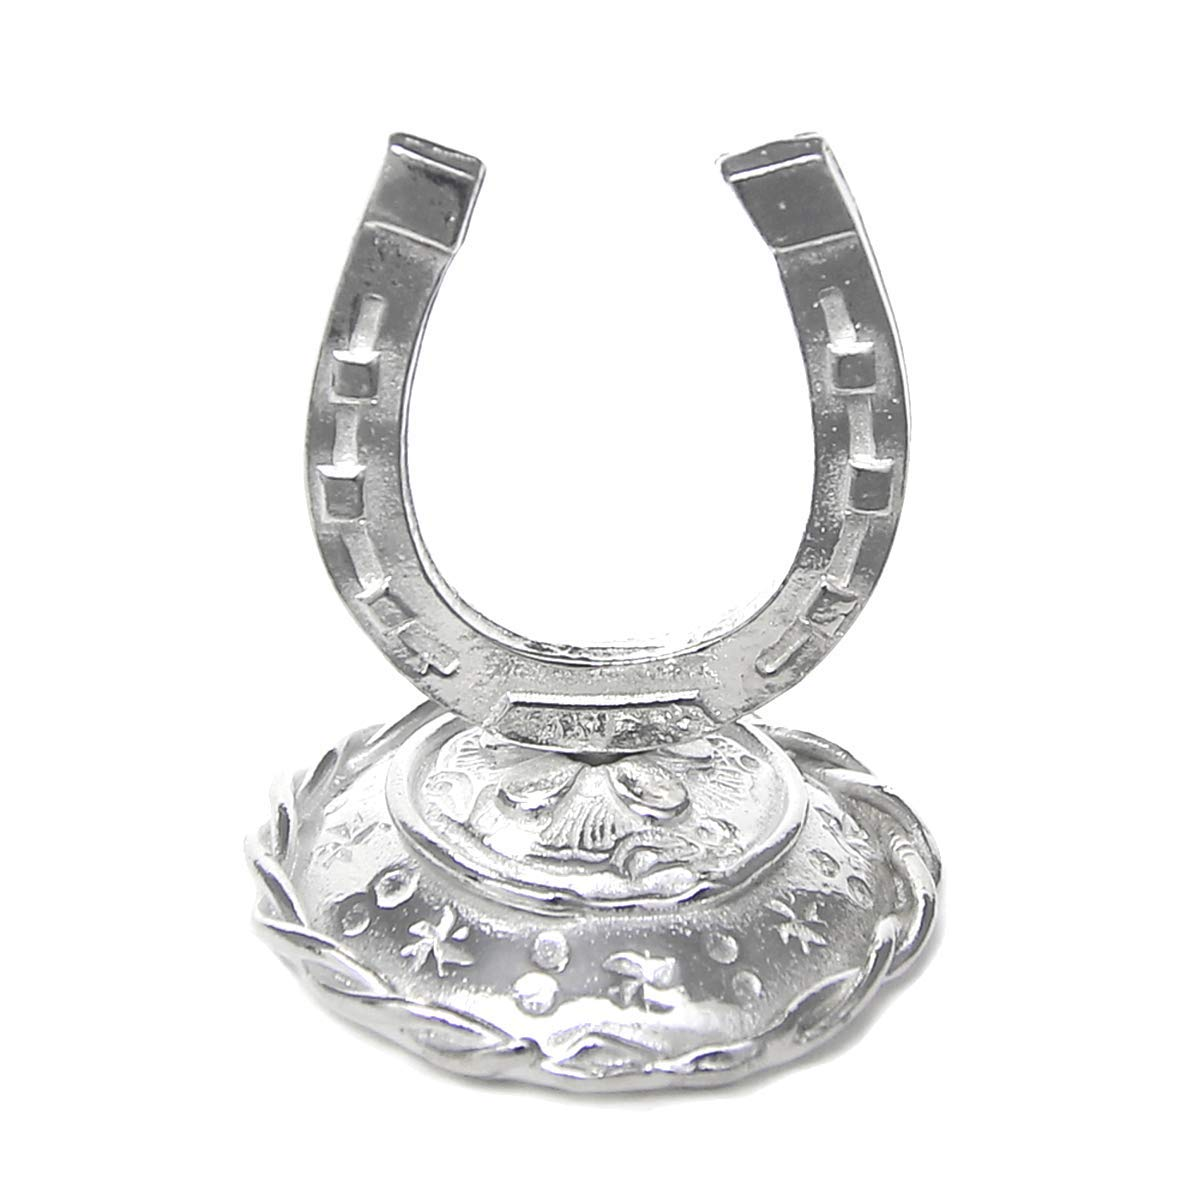 Lucky Horseshoe Ring Holder Tiny Ring Stand -Gift Boxed with Good Luck Story Card -Handcrafted Pewter Made in USA